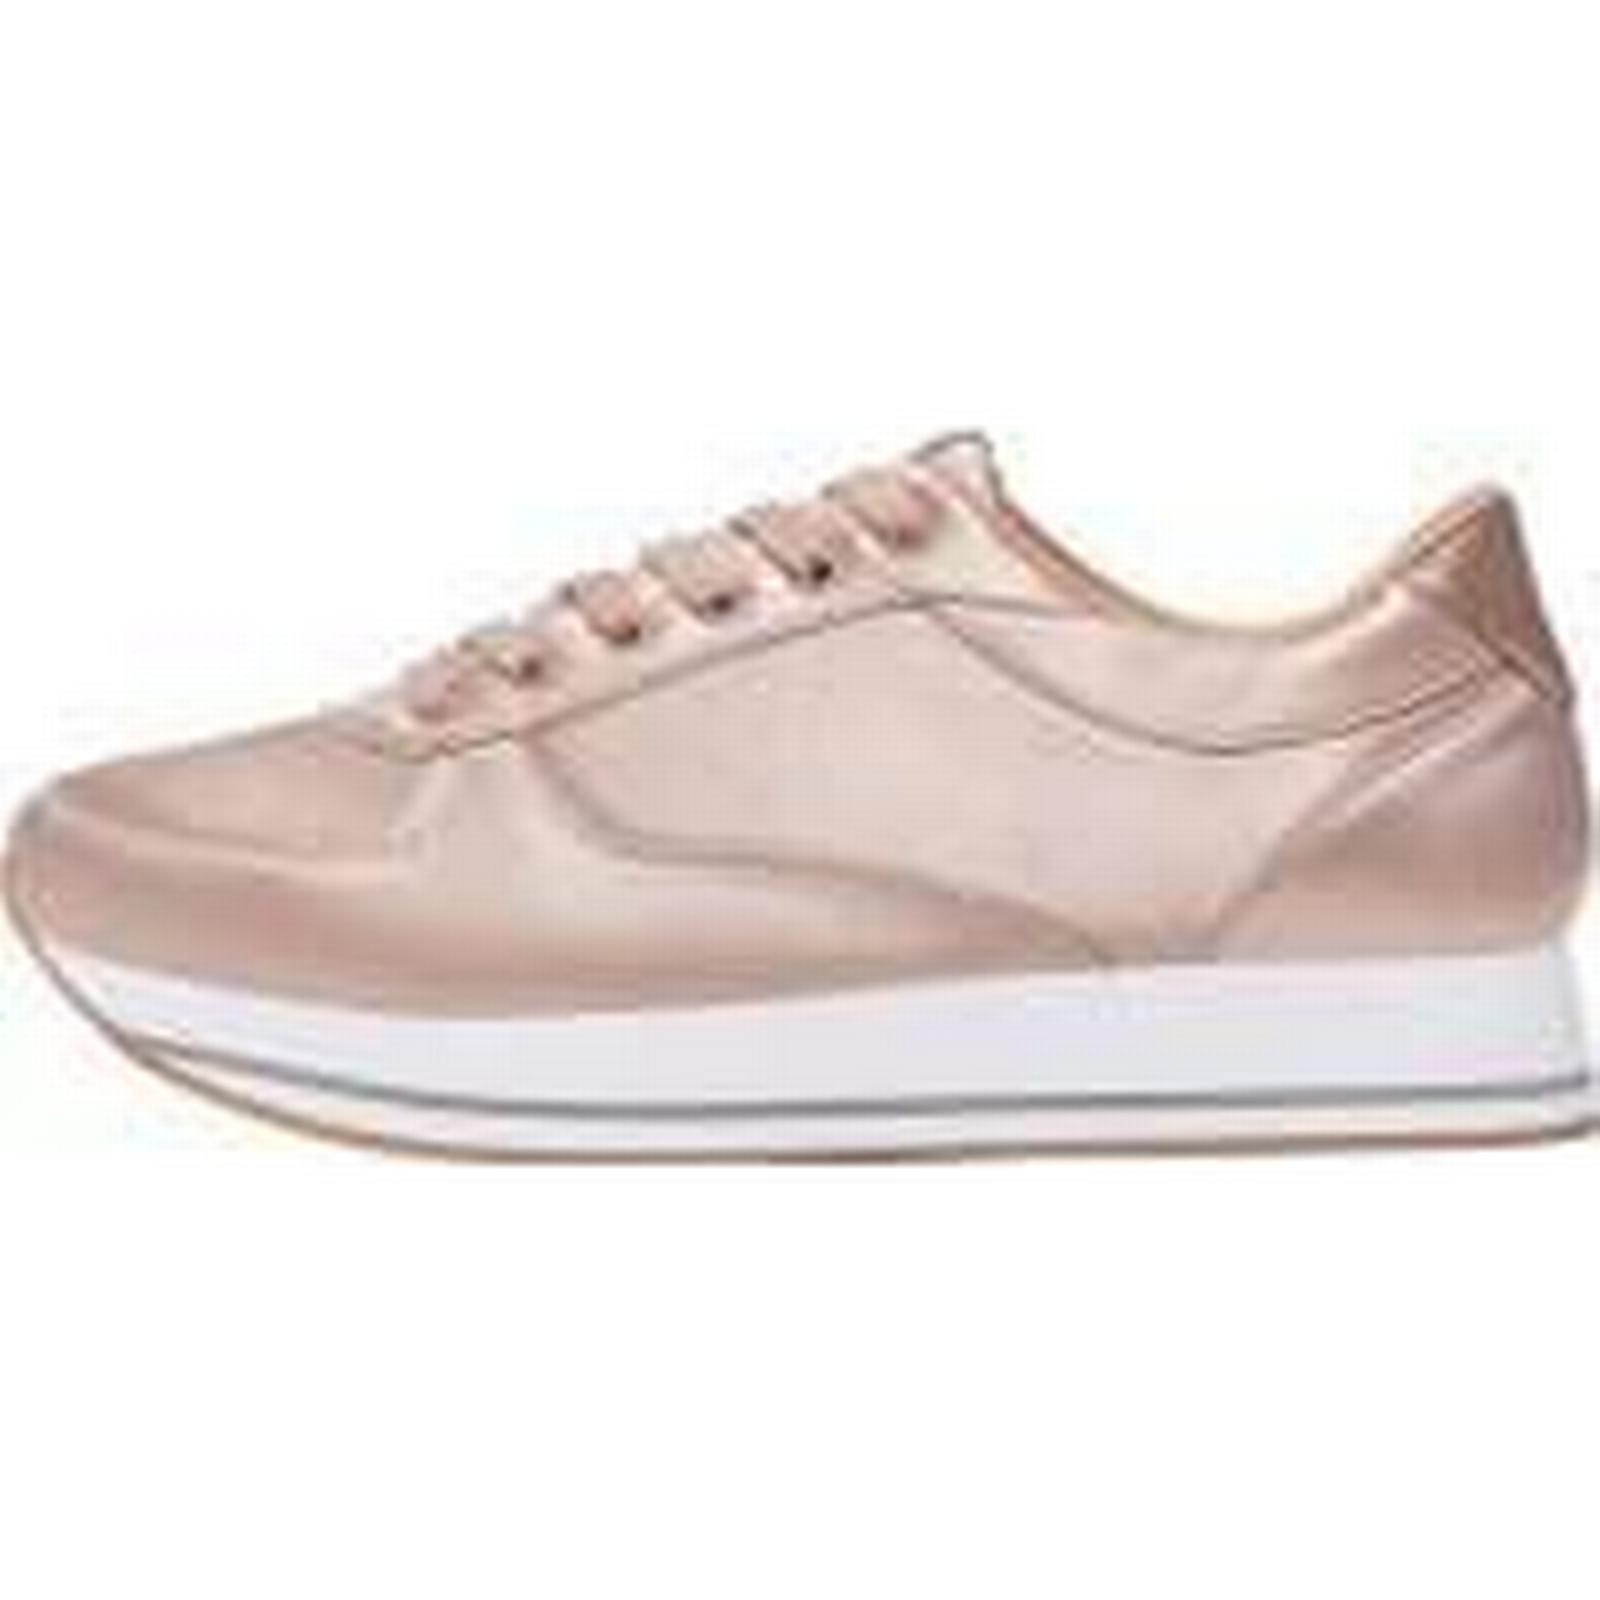 ONLY (39) Shiny Sneakers Women Pink (39) ONLY 2cf525